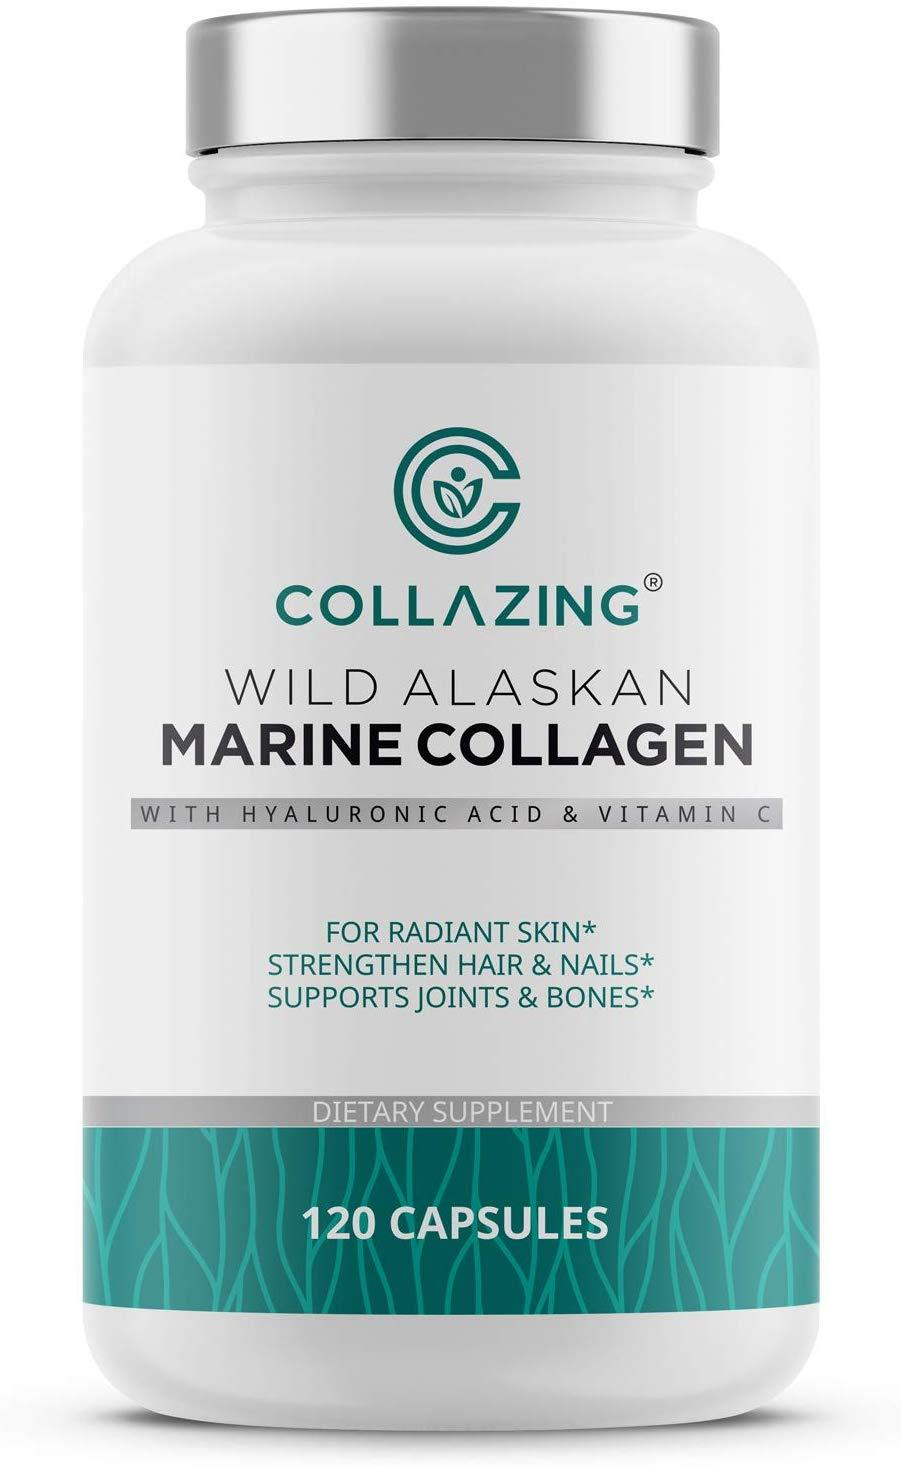 [USA]Marine Collagen Protein Peptides with Hyaluronic Acid /Vitamin C